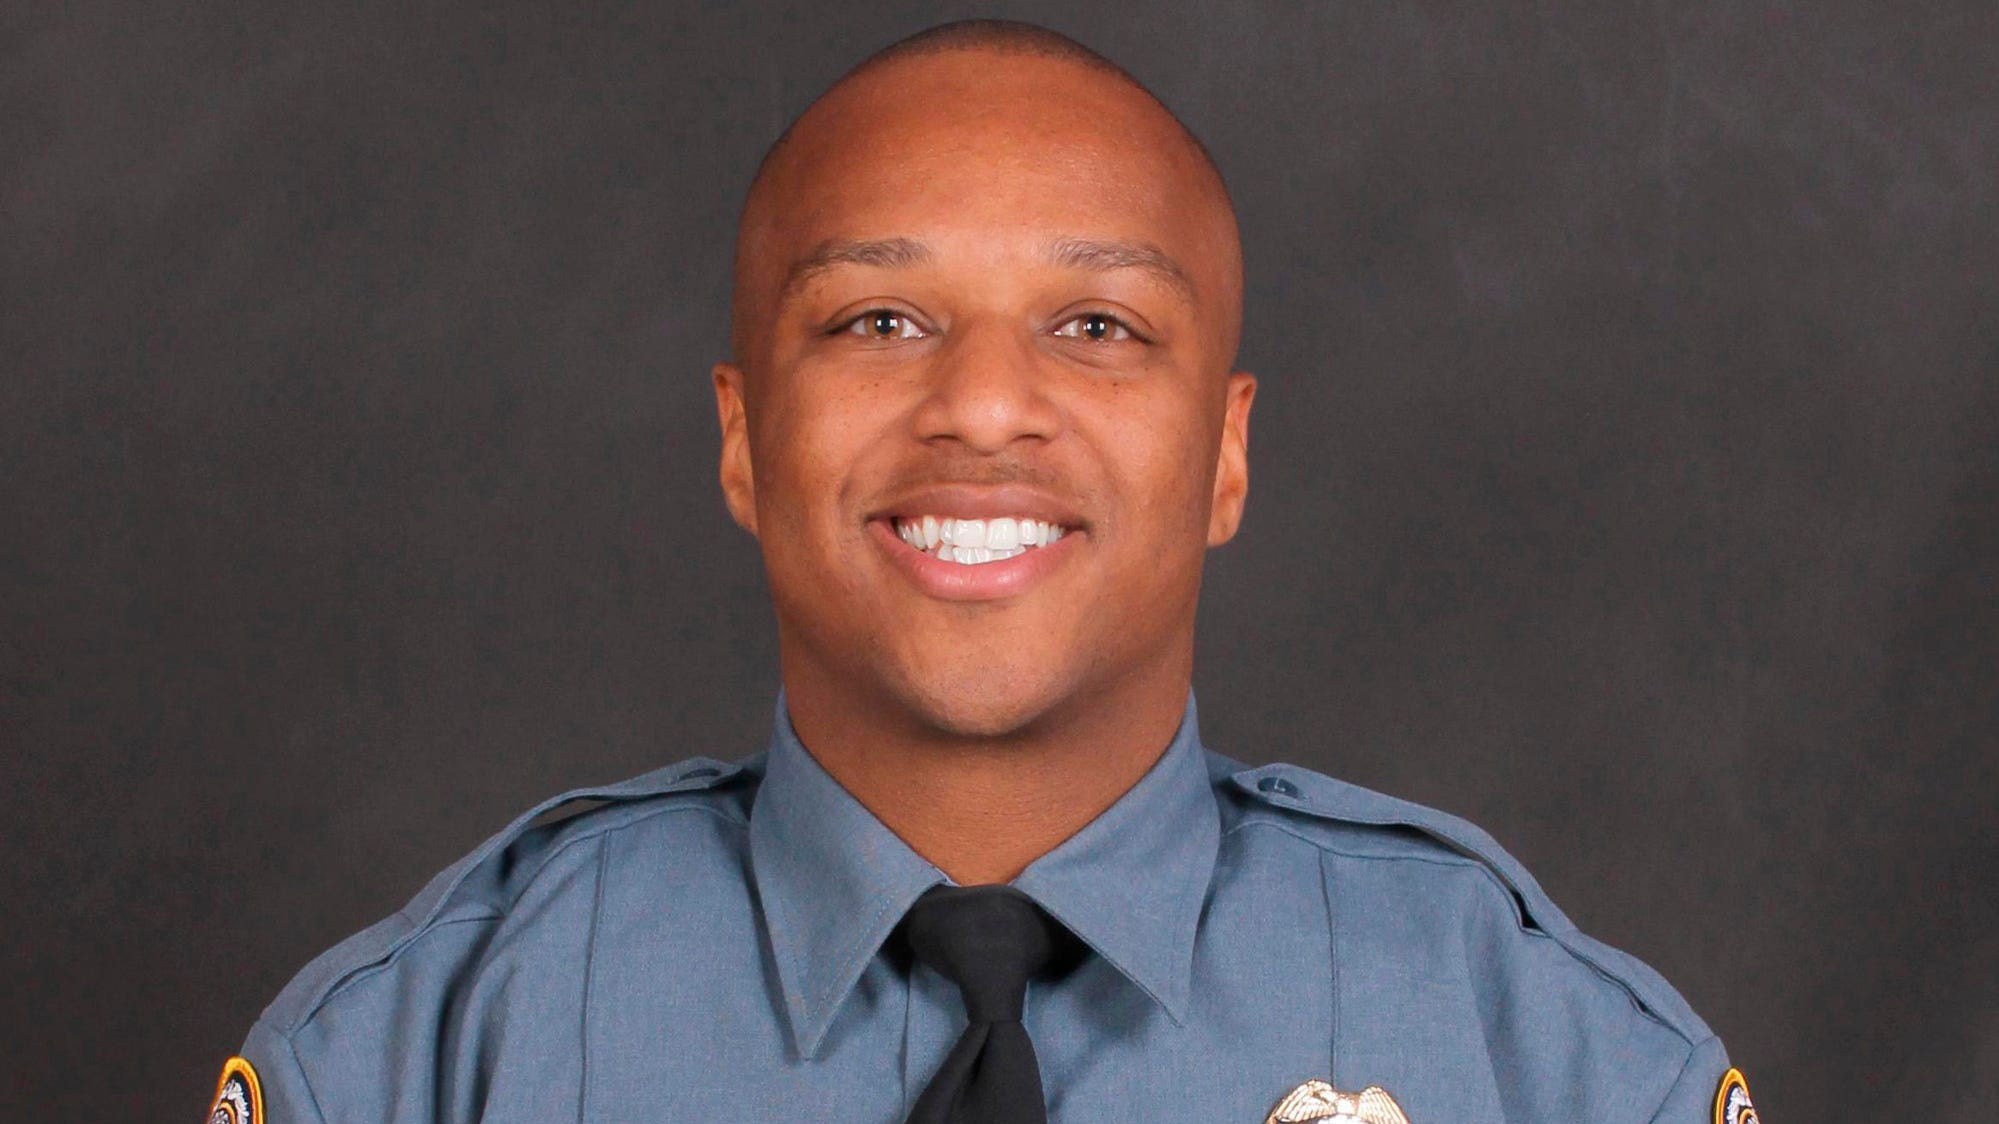 This undated photo provided by the Gwinnett County Police Department on Saturday, Oct. 20, 2018 shows Officer Antwan Toney. On Saturday, Toney was killed after being shot while responding to a suspicious vehicle parked near a middle school.